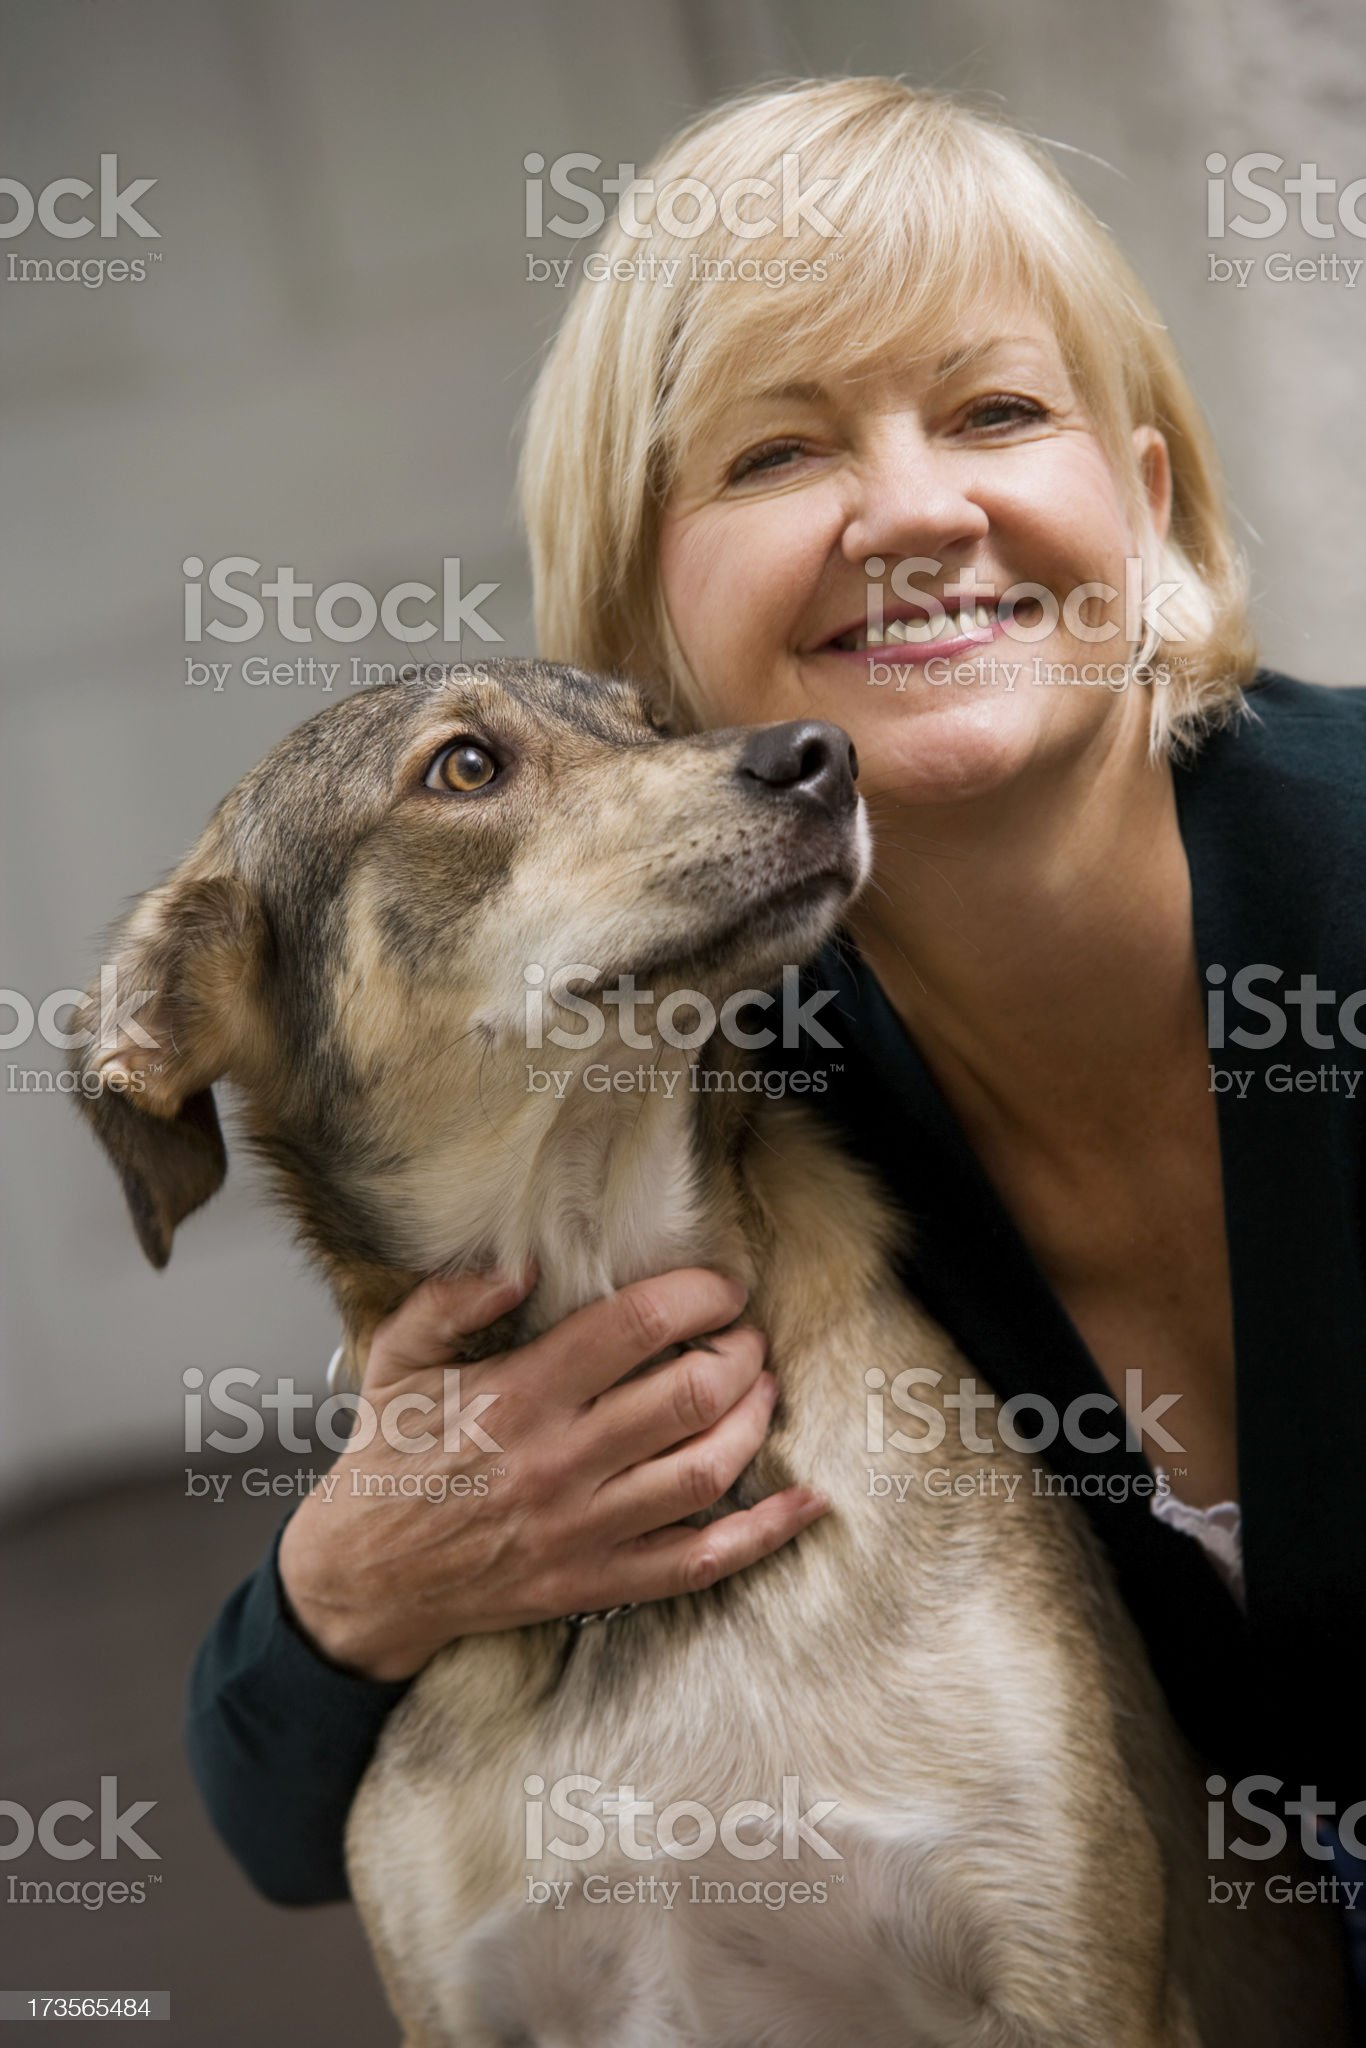 Dog and Woman royalty-free stock photo